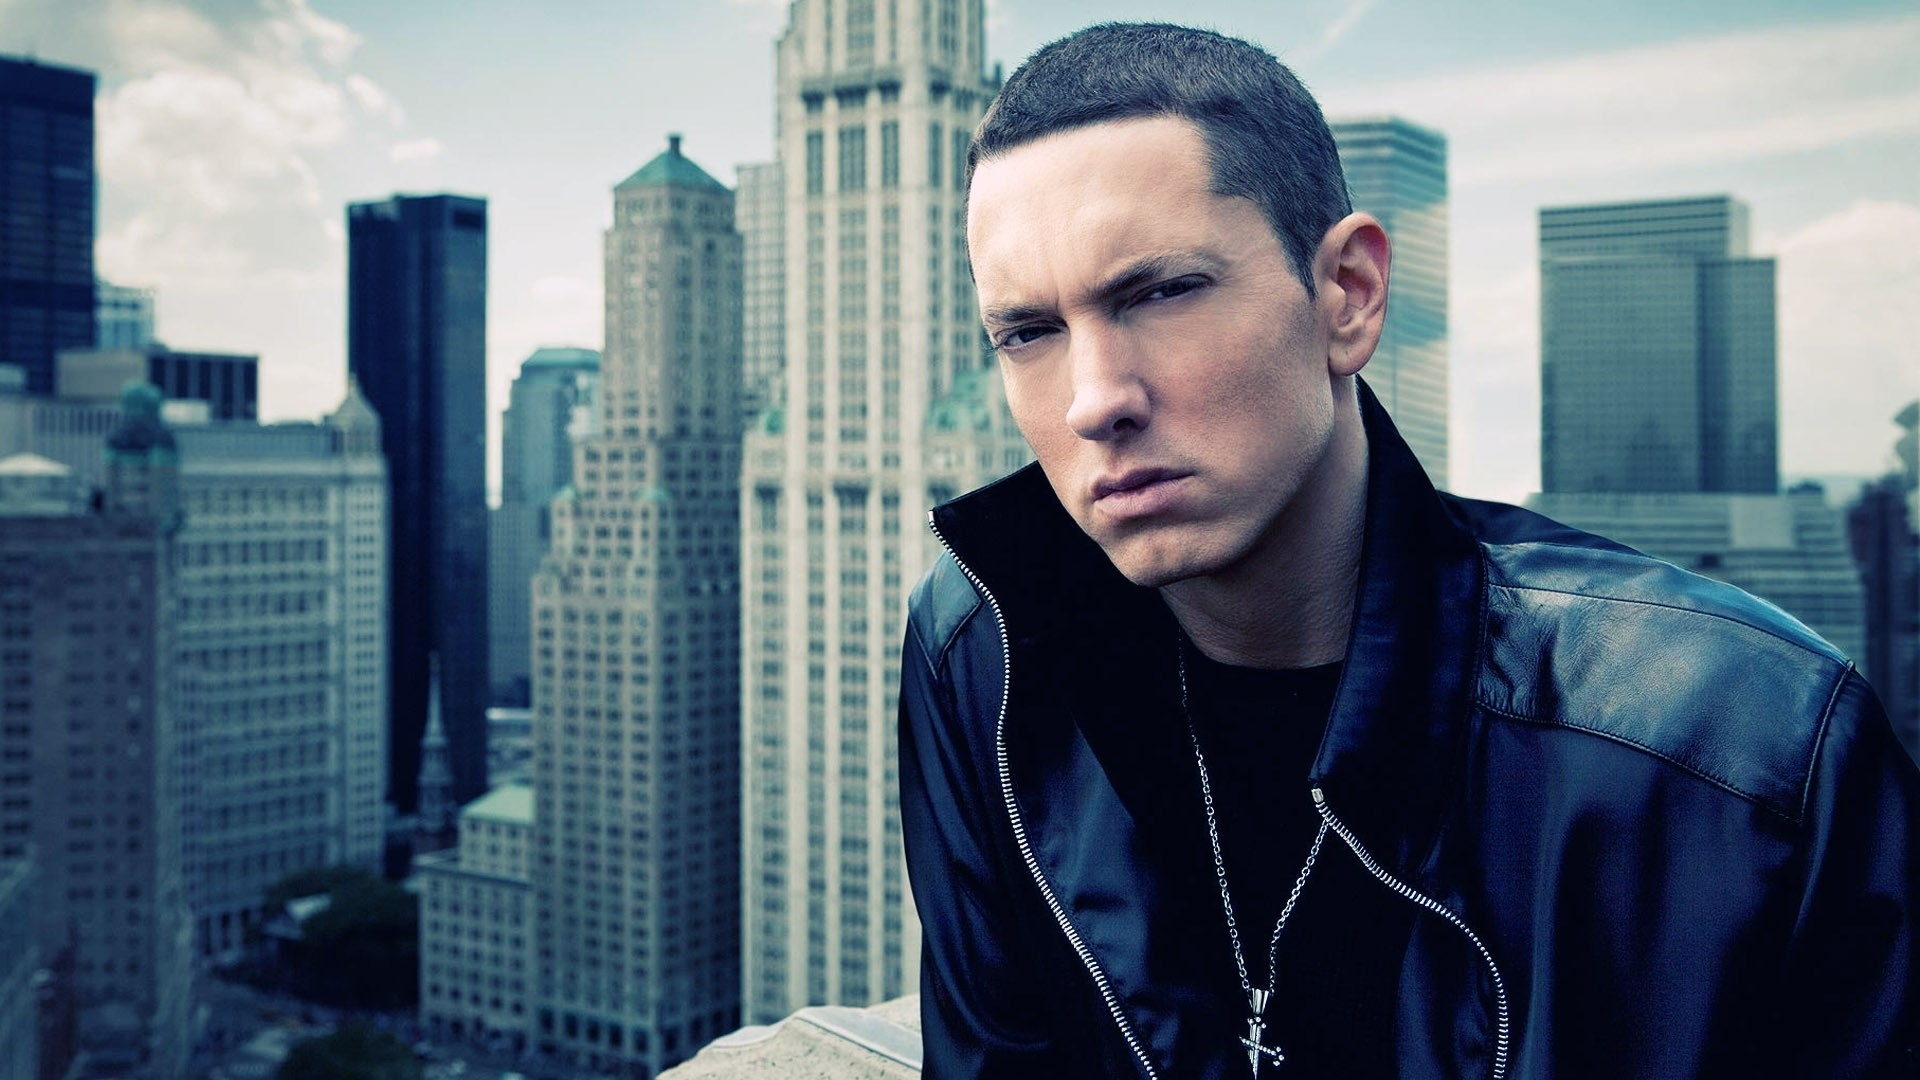 1920x1080 Eminem 2013 Exclusive HD Wallpapers #1914